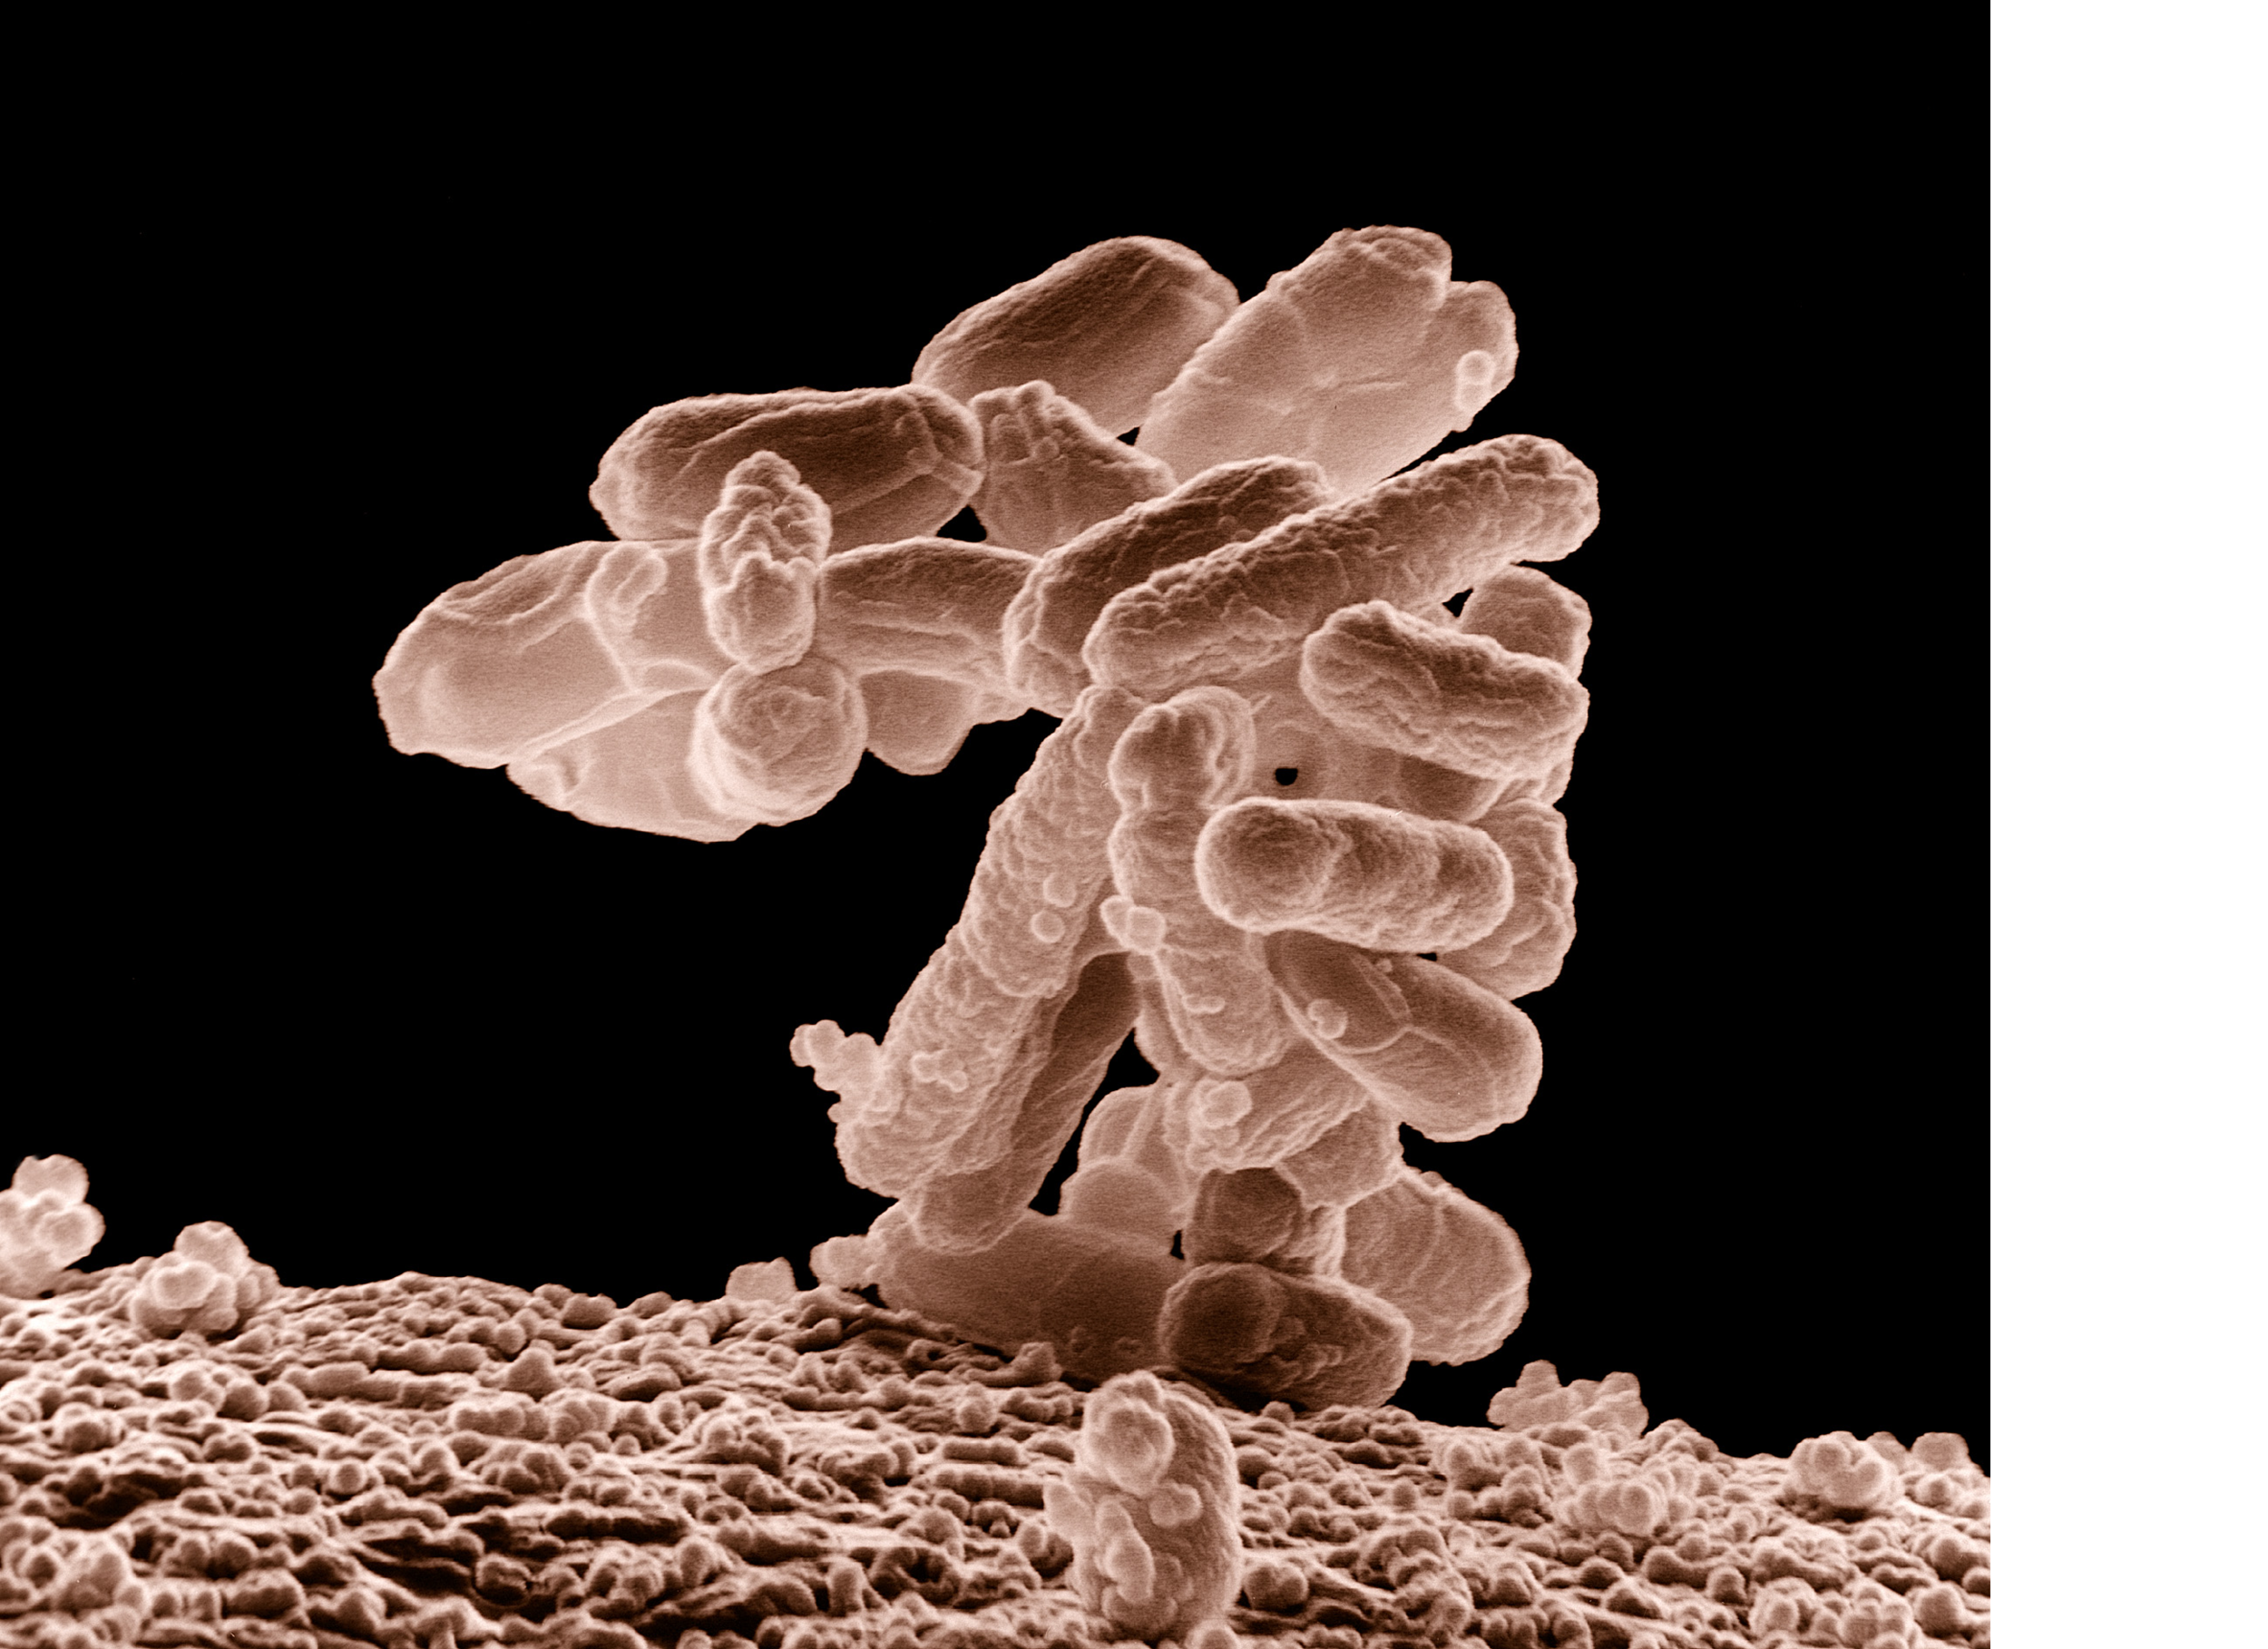 E_coli_at_10000x,_original.png